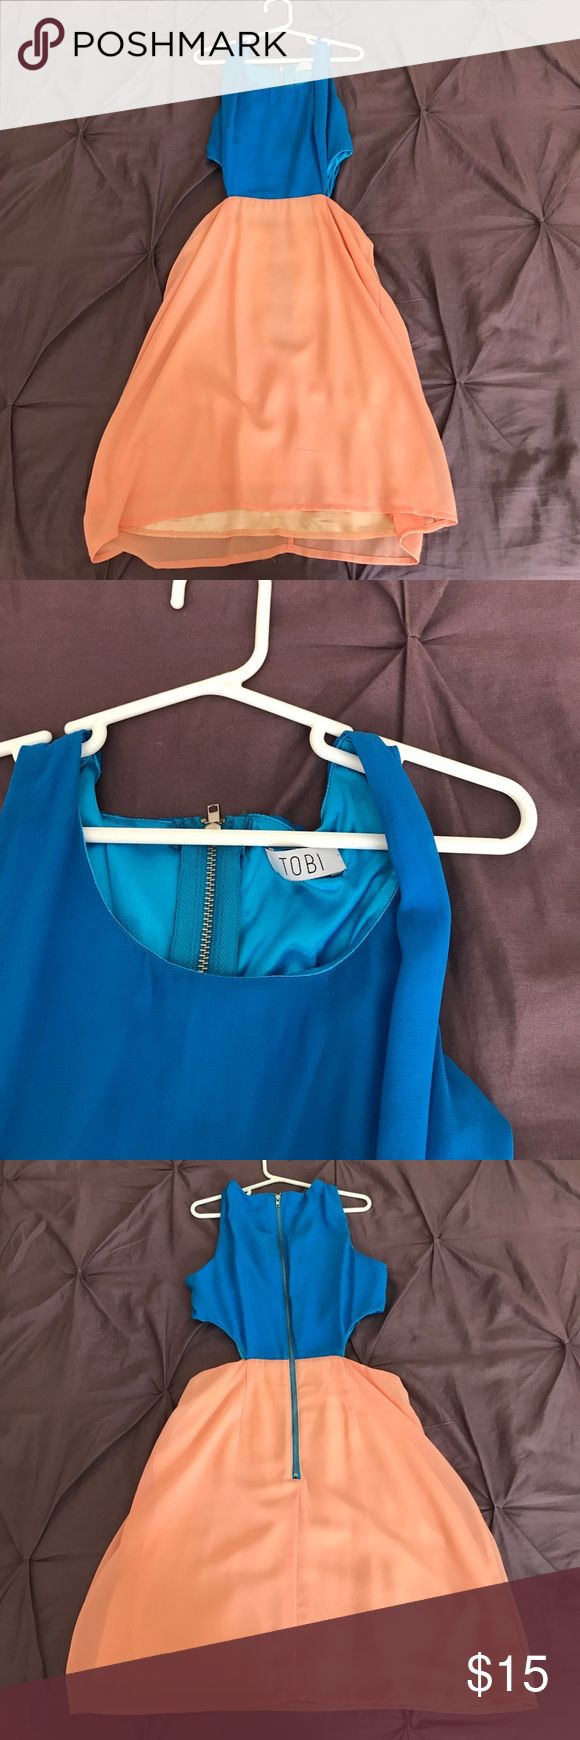 Tobi Women's blue and pink dress Blue and pink dress with side cut outs and zip up back. Never worn! Tobi Dresses Midi